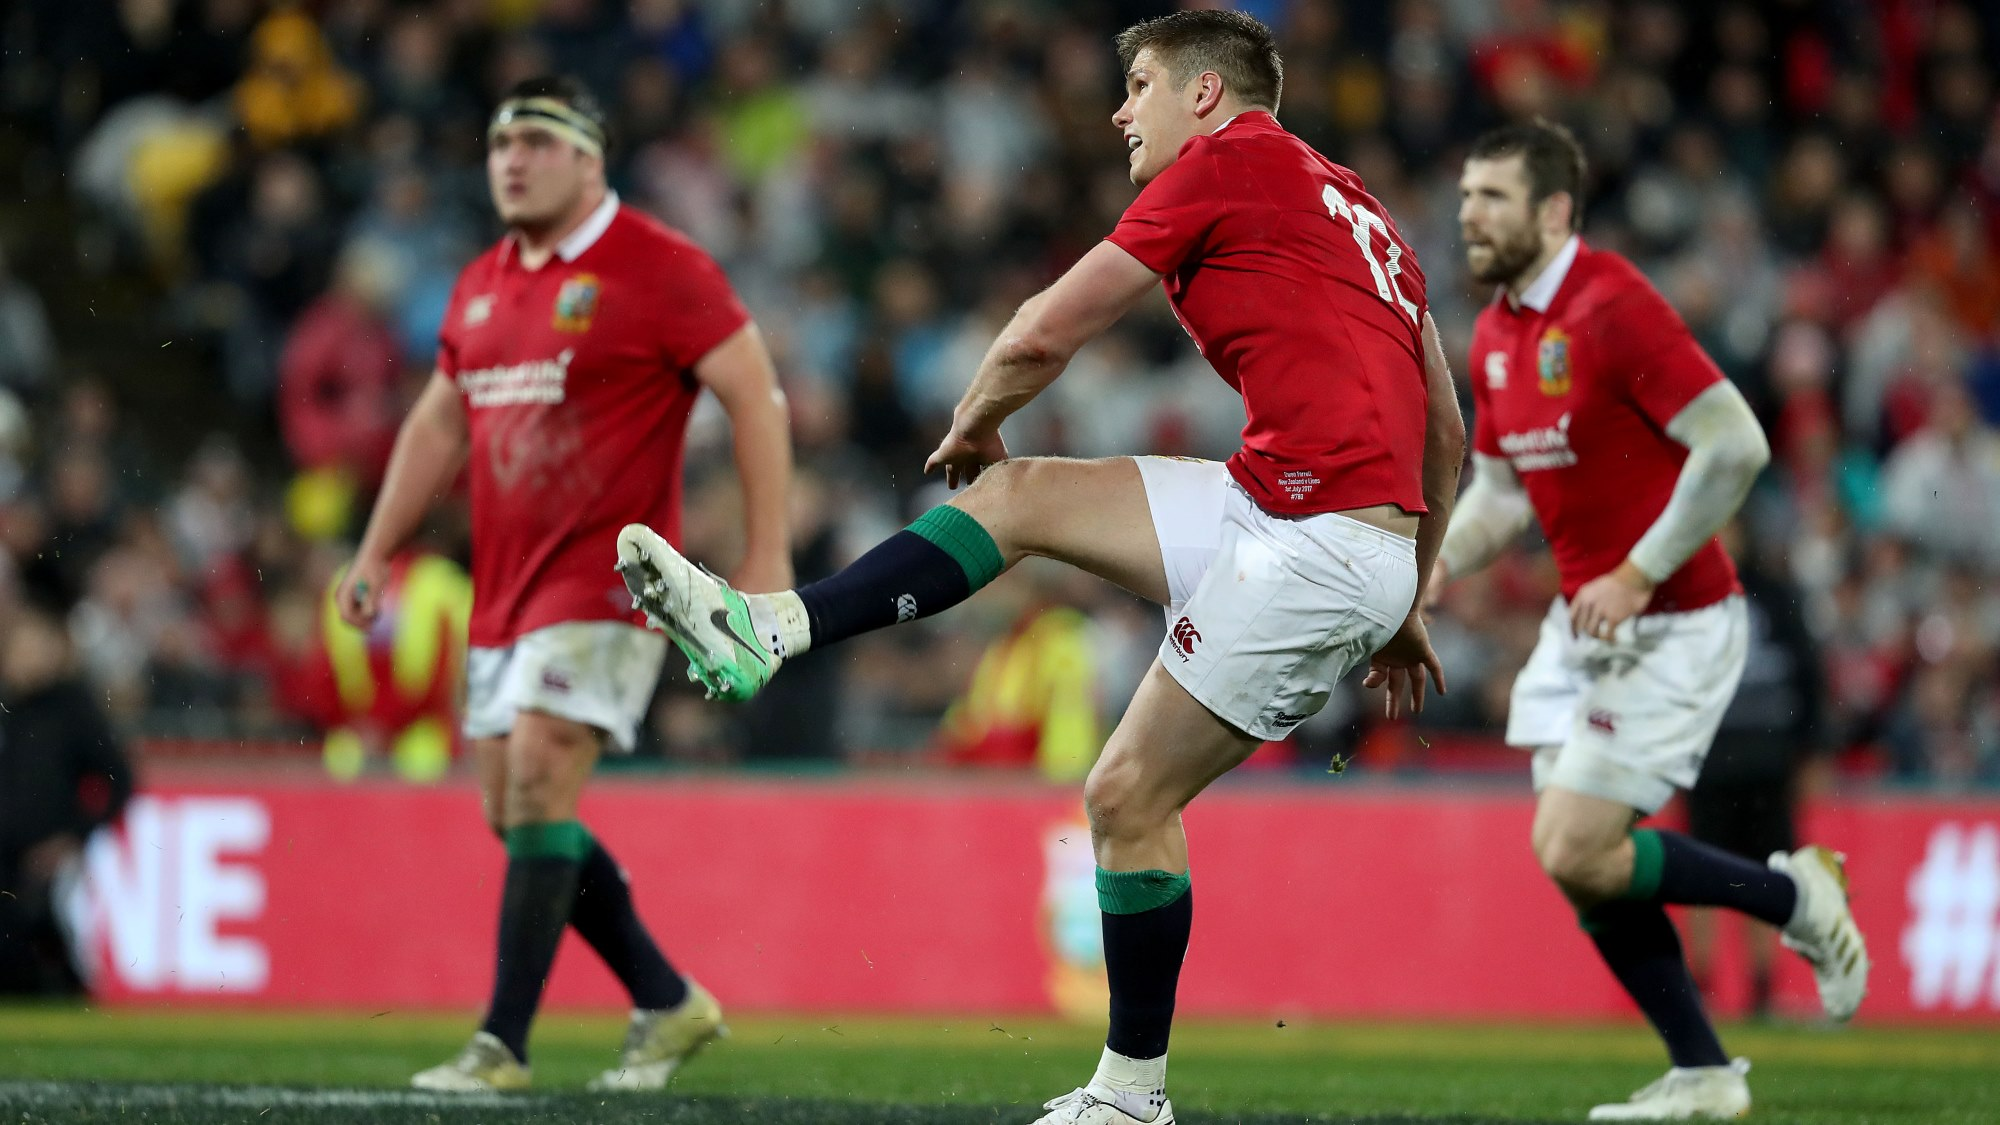 Farrell excited for series decider after Wellington win